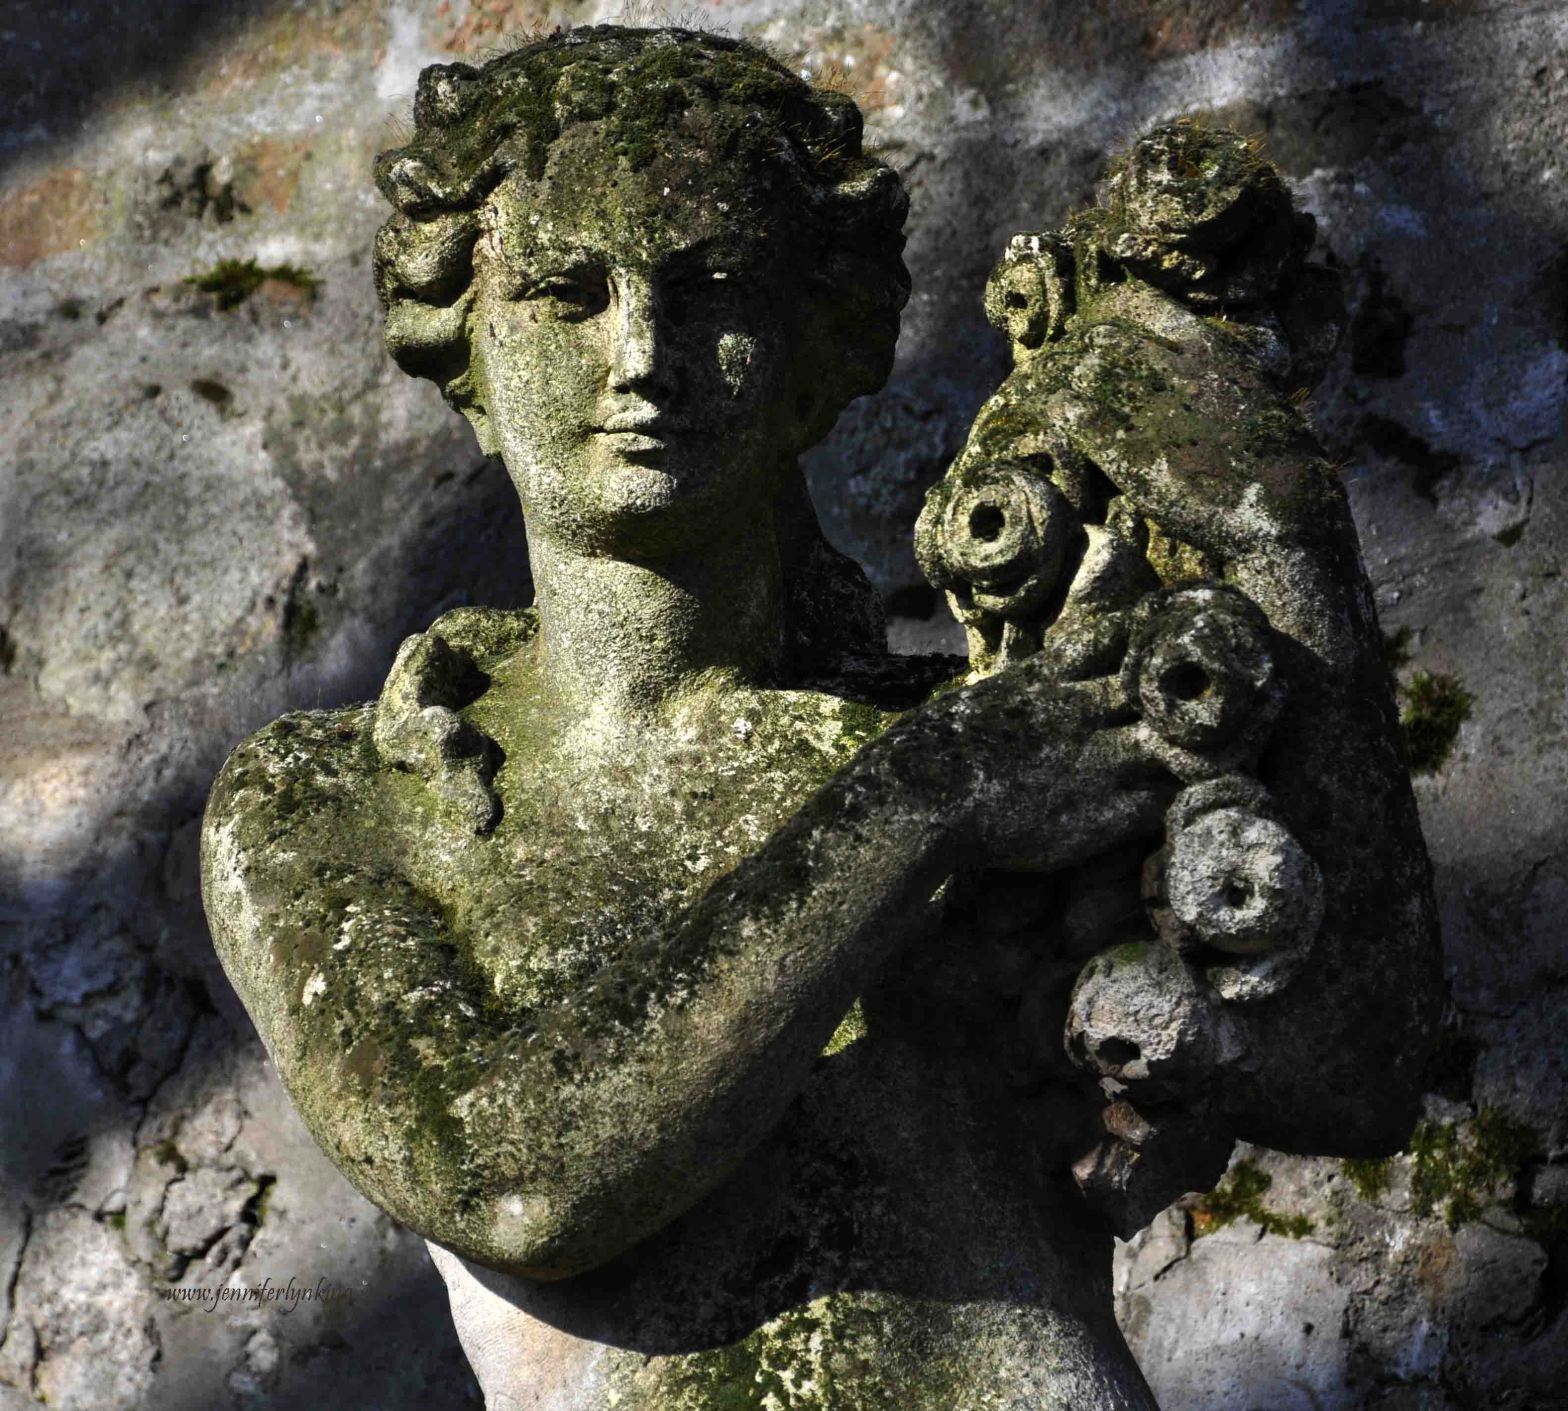 Age with Beauty: Beauty with Age, an original sculpture, Italy's Veneto